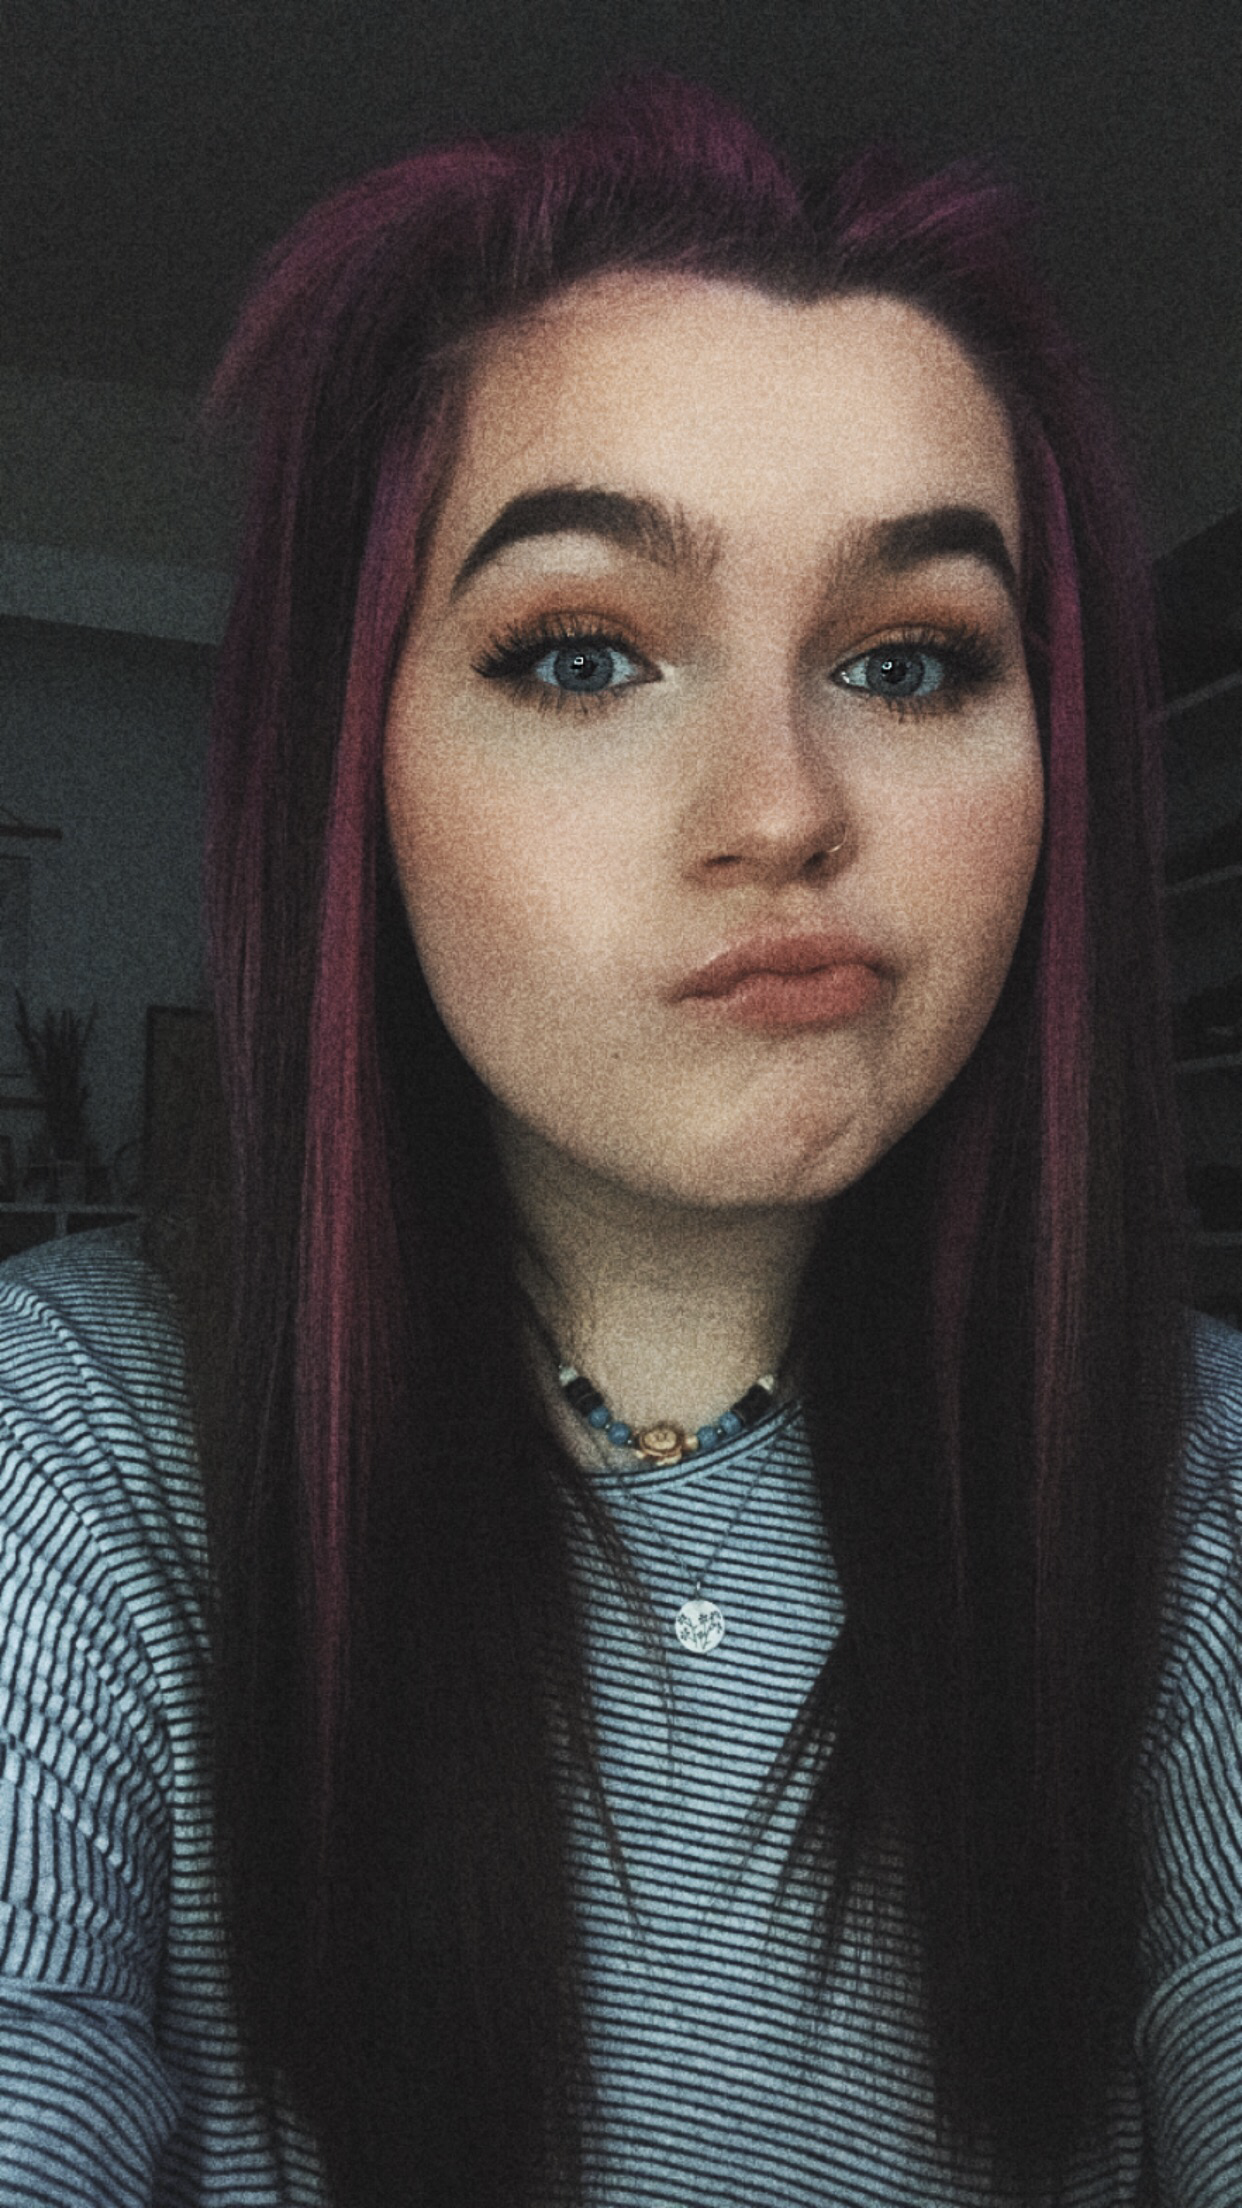 Pink Hair In 2020 Hair Inspo Color Front Hair Styles Cool Hair Color